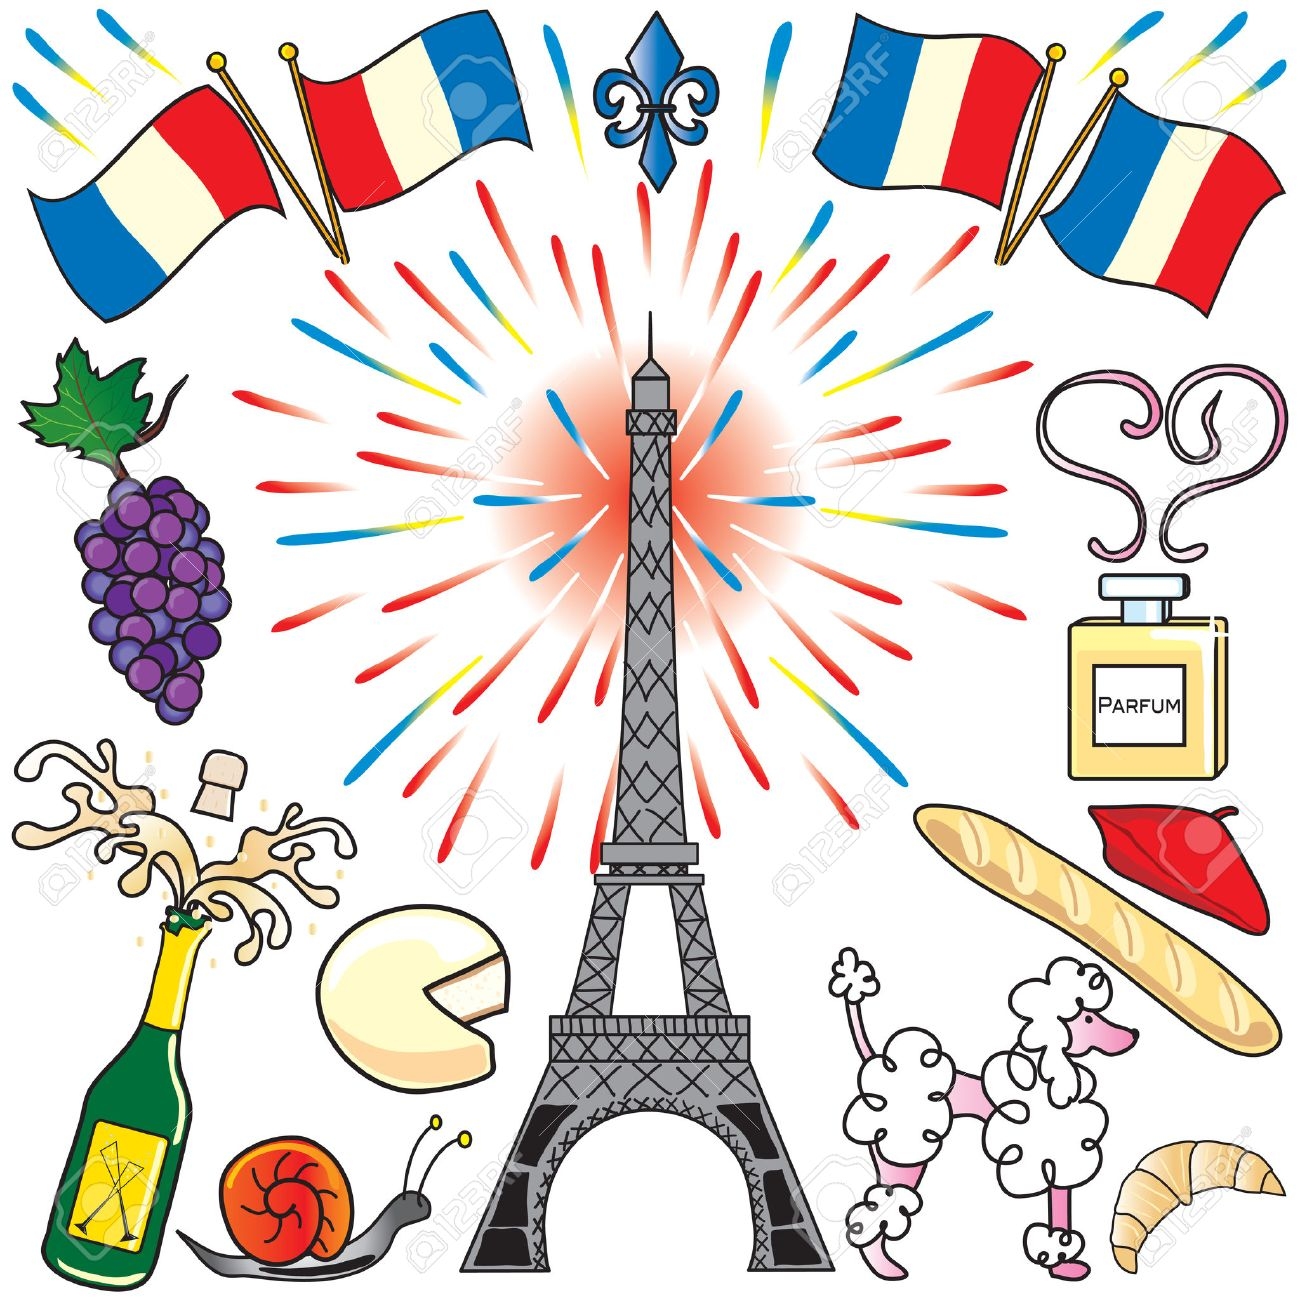 Create your own parisian party with the Eiffel Tower, fireworks, french flags, food and champagne. Perfect for Bastille Day! Stock Vector - 4871877